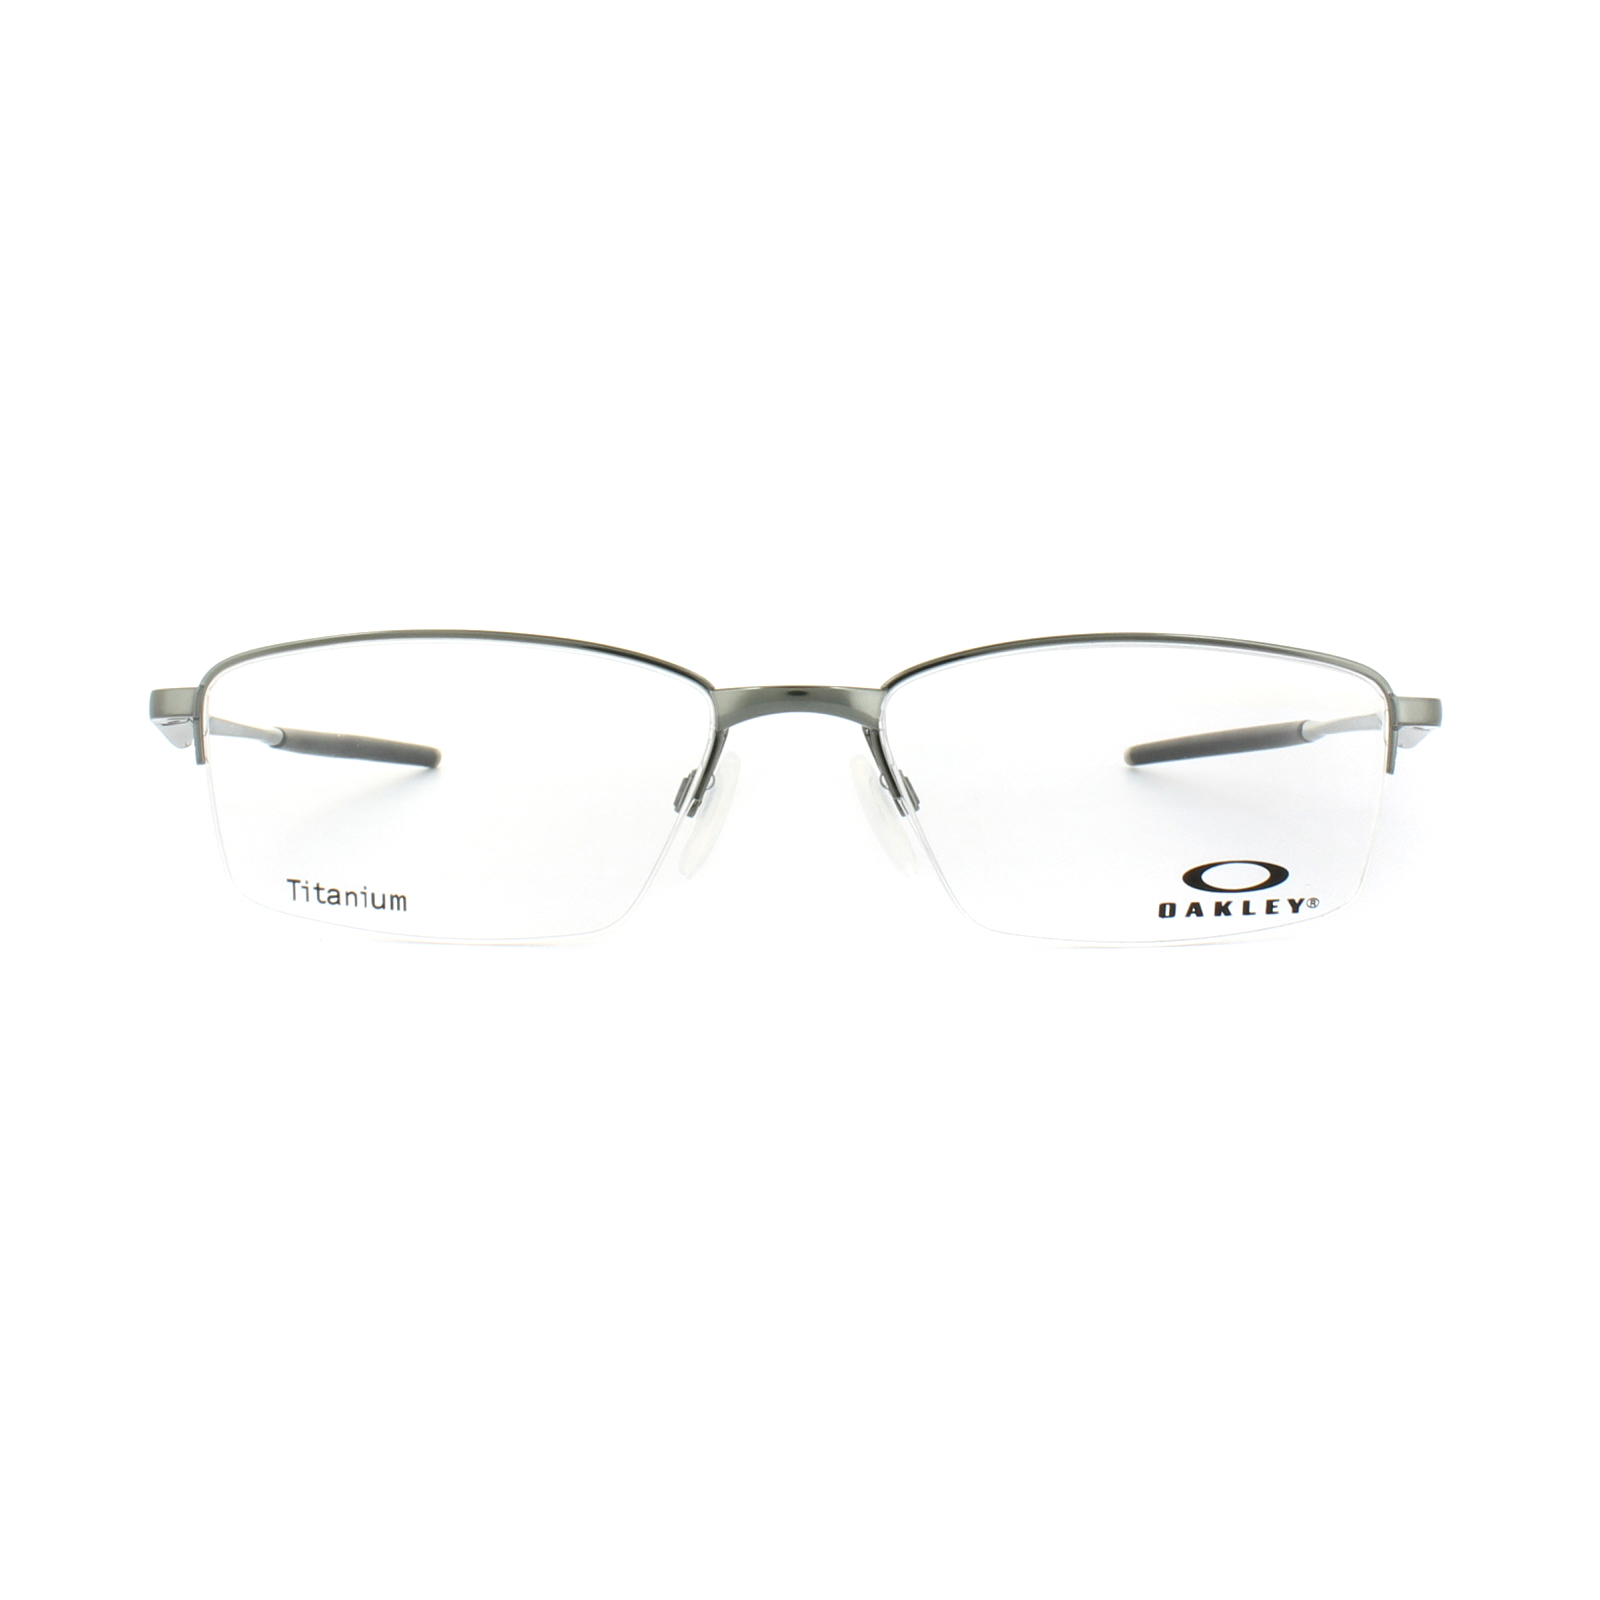 57fd631b67 Cheap Oakley Limit Switch 0.5 Glasses Frames - Discounted Sunglasses